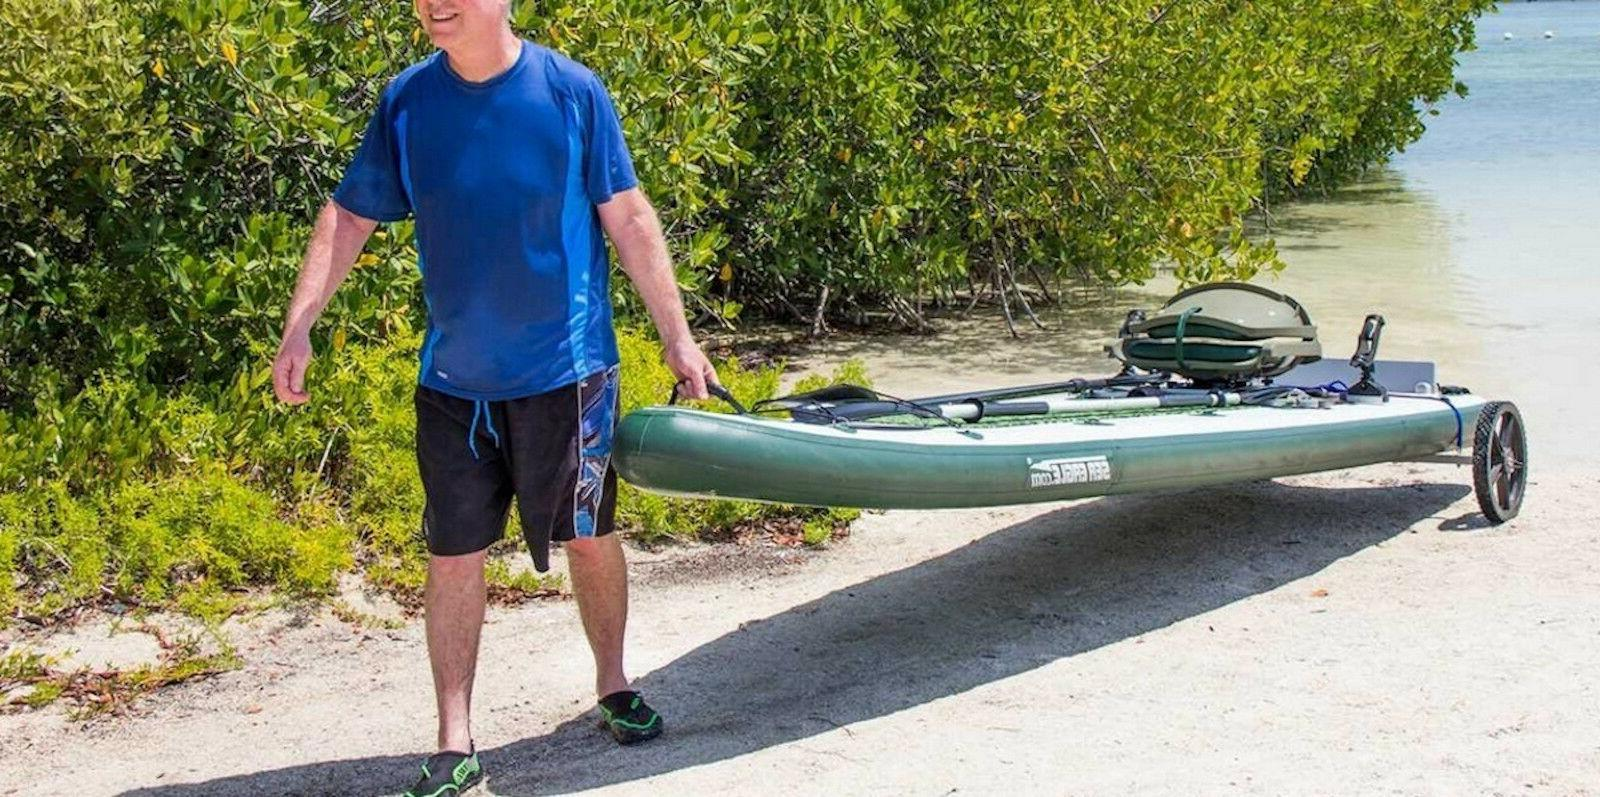 Sea Eagle FS126 Sup Swivel Rig Package Inflatable